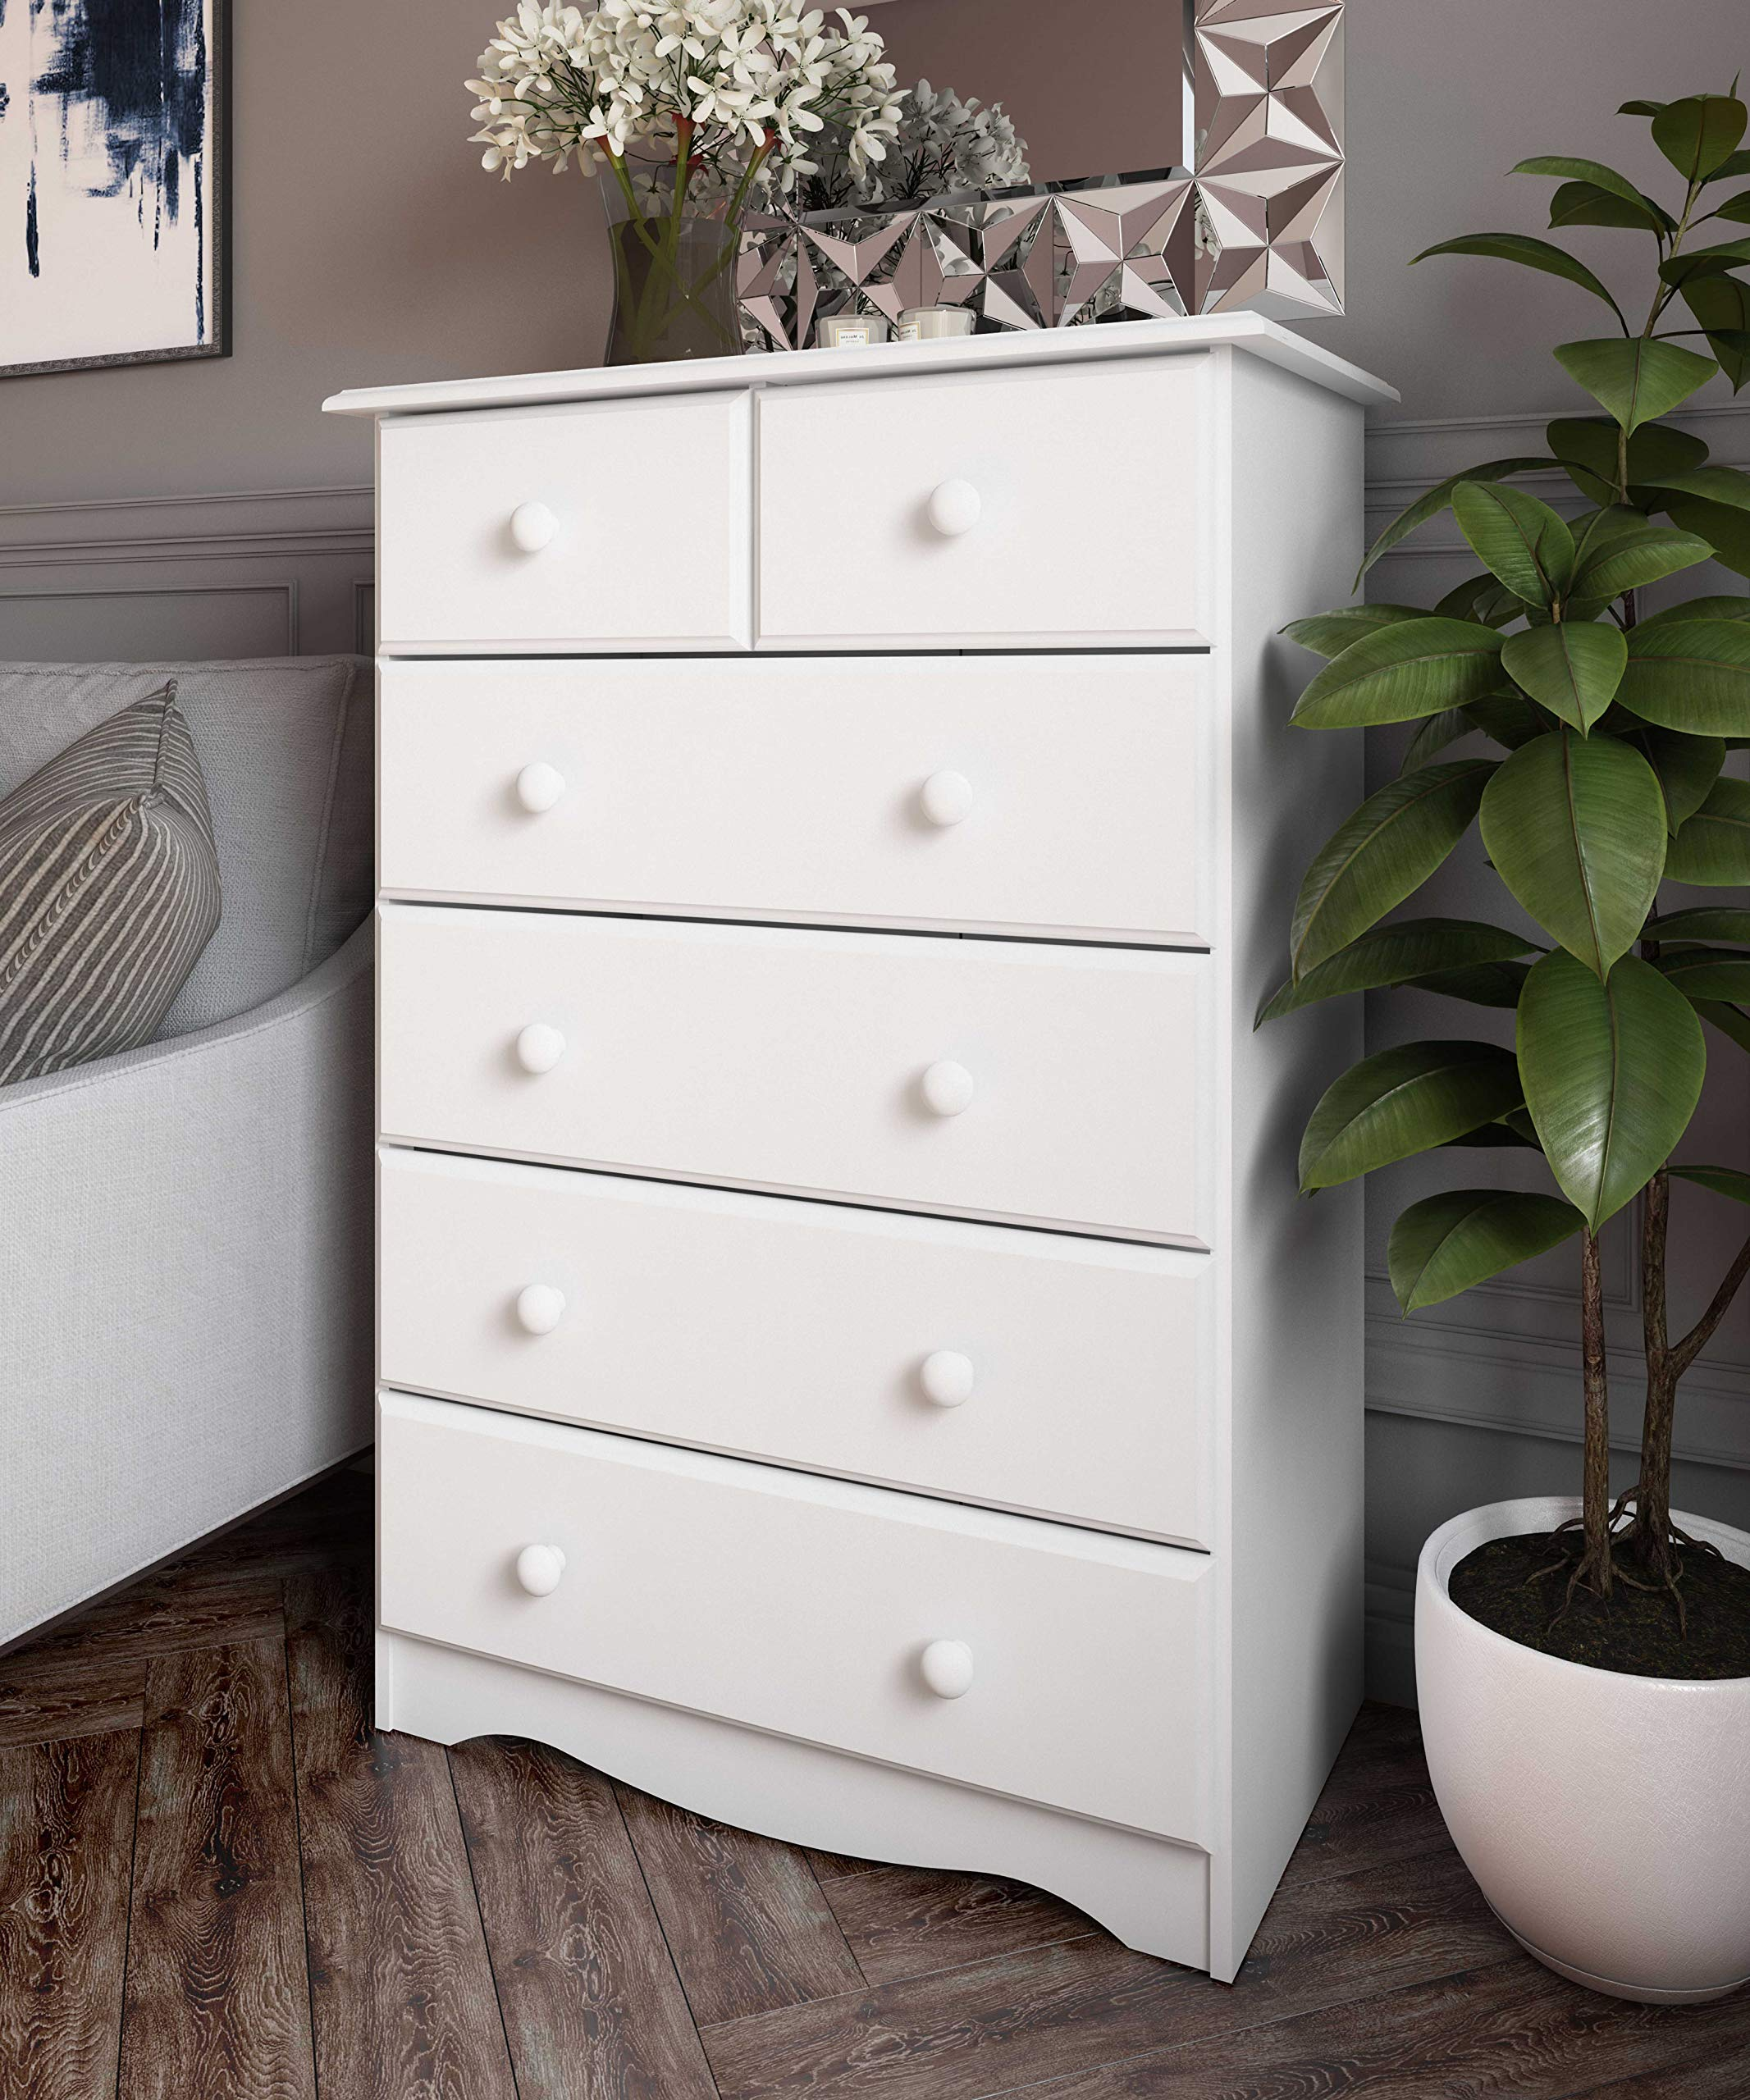 100% Solid Wood 4+2 or 6 Drawer Chest by Palace Imports 5361, White, 32''W x 44.5''H x 17''D. Metal Antique Brass Knobs Sold Separately. Requires Assembly. by Palace Imports